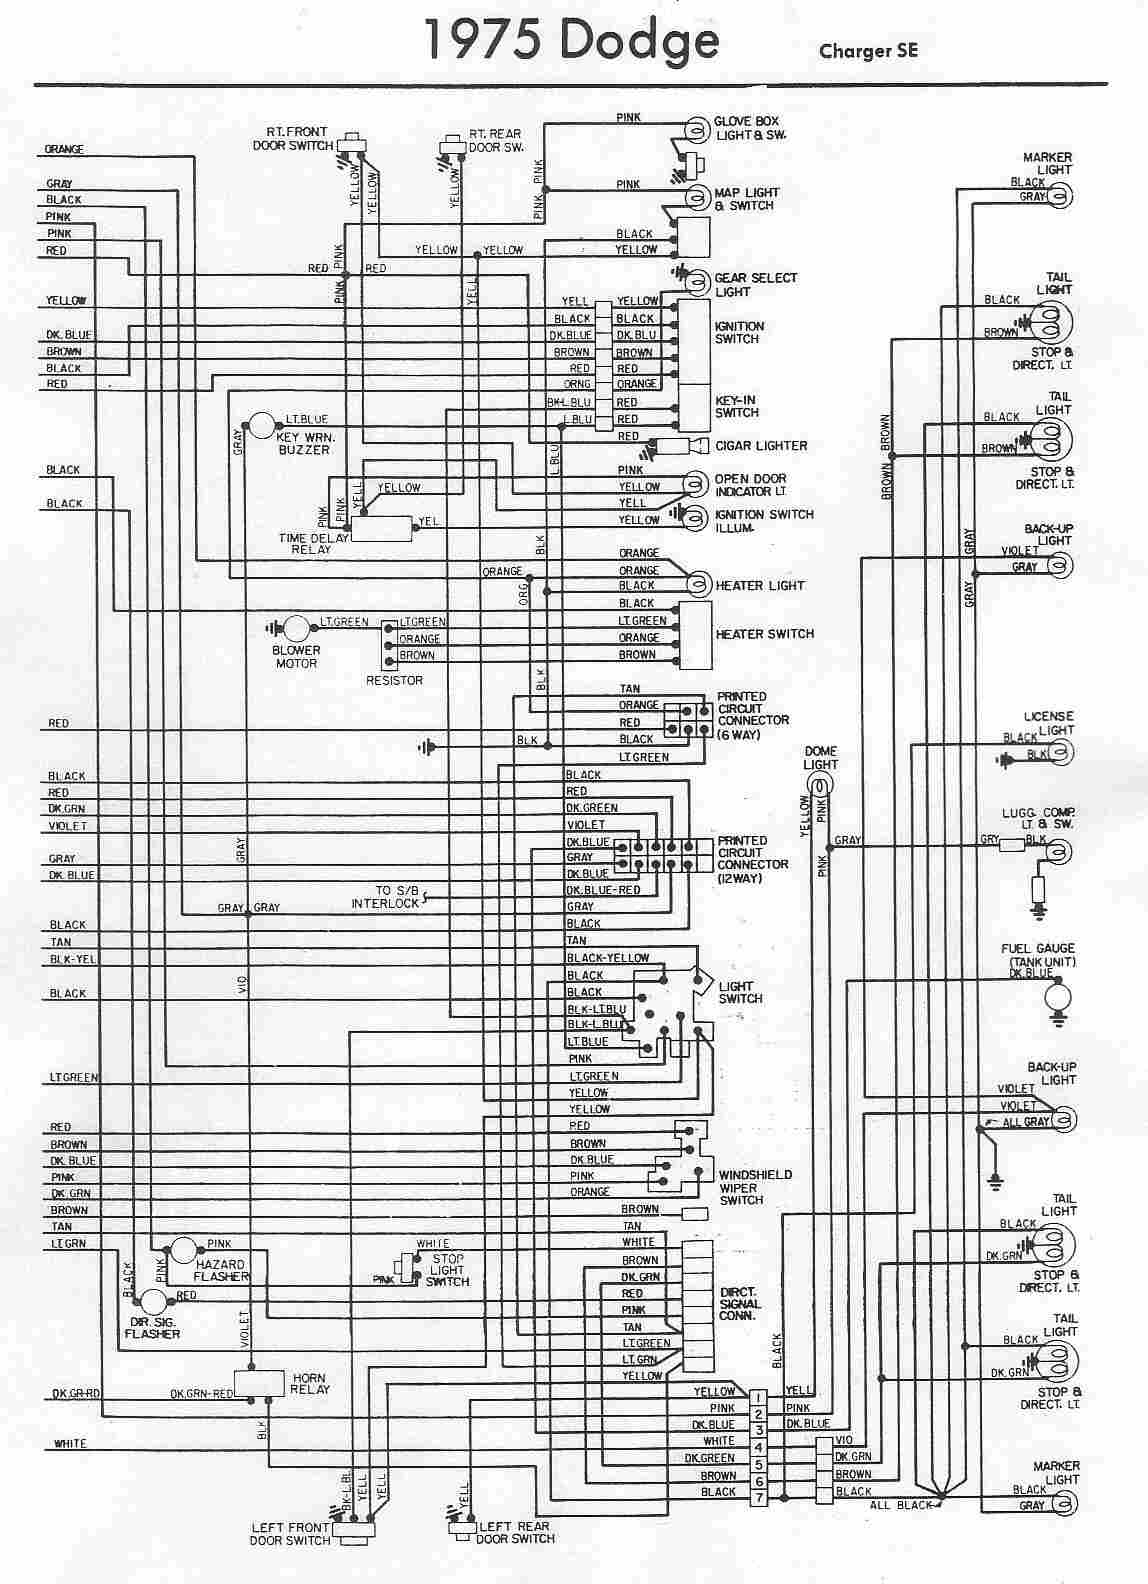 99 Dodge Wiper Motor Wiring Diagram Schematics 1972 Firebird Truck Electrical Diagrams Detailed Schematic Rear